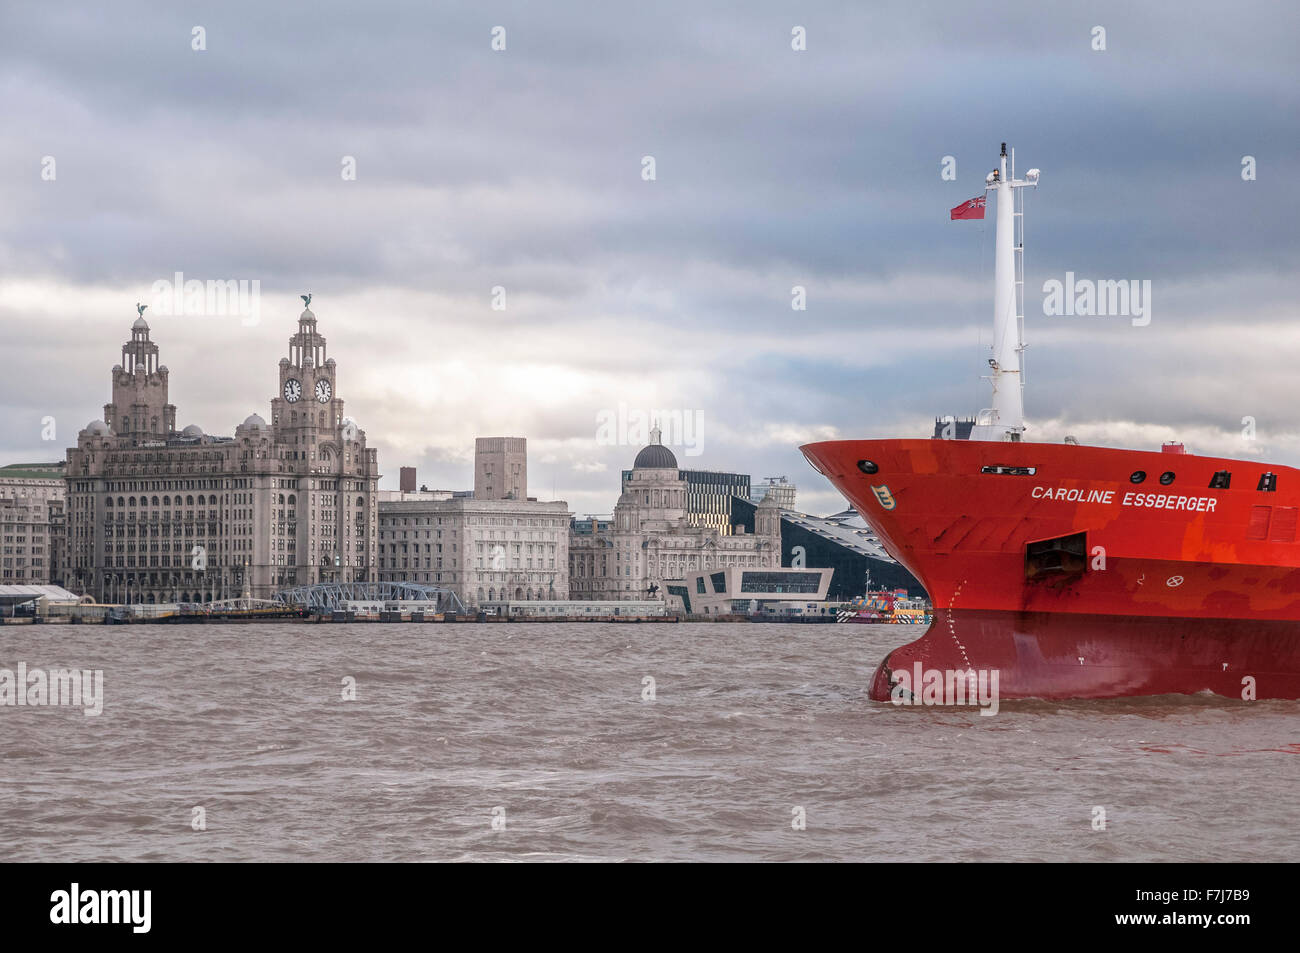 The oil and chemical tanker ship the Caroline Essberger from Holland in the river Mersey. - Stock Image